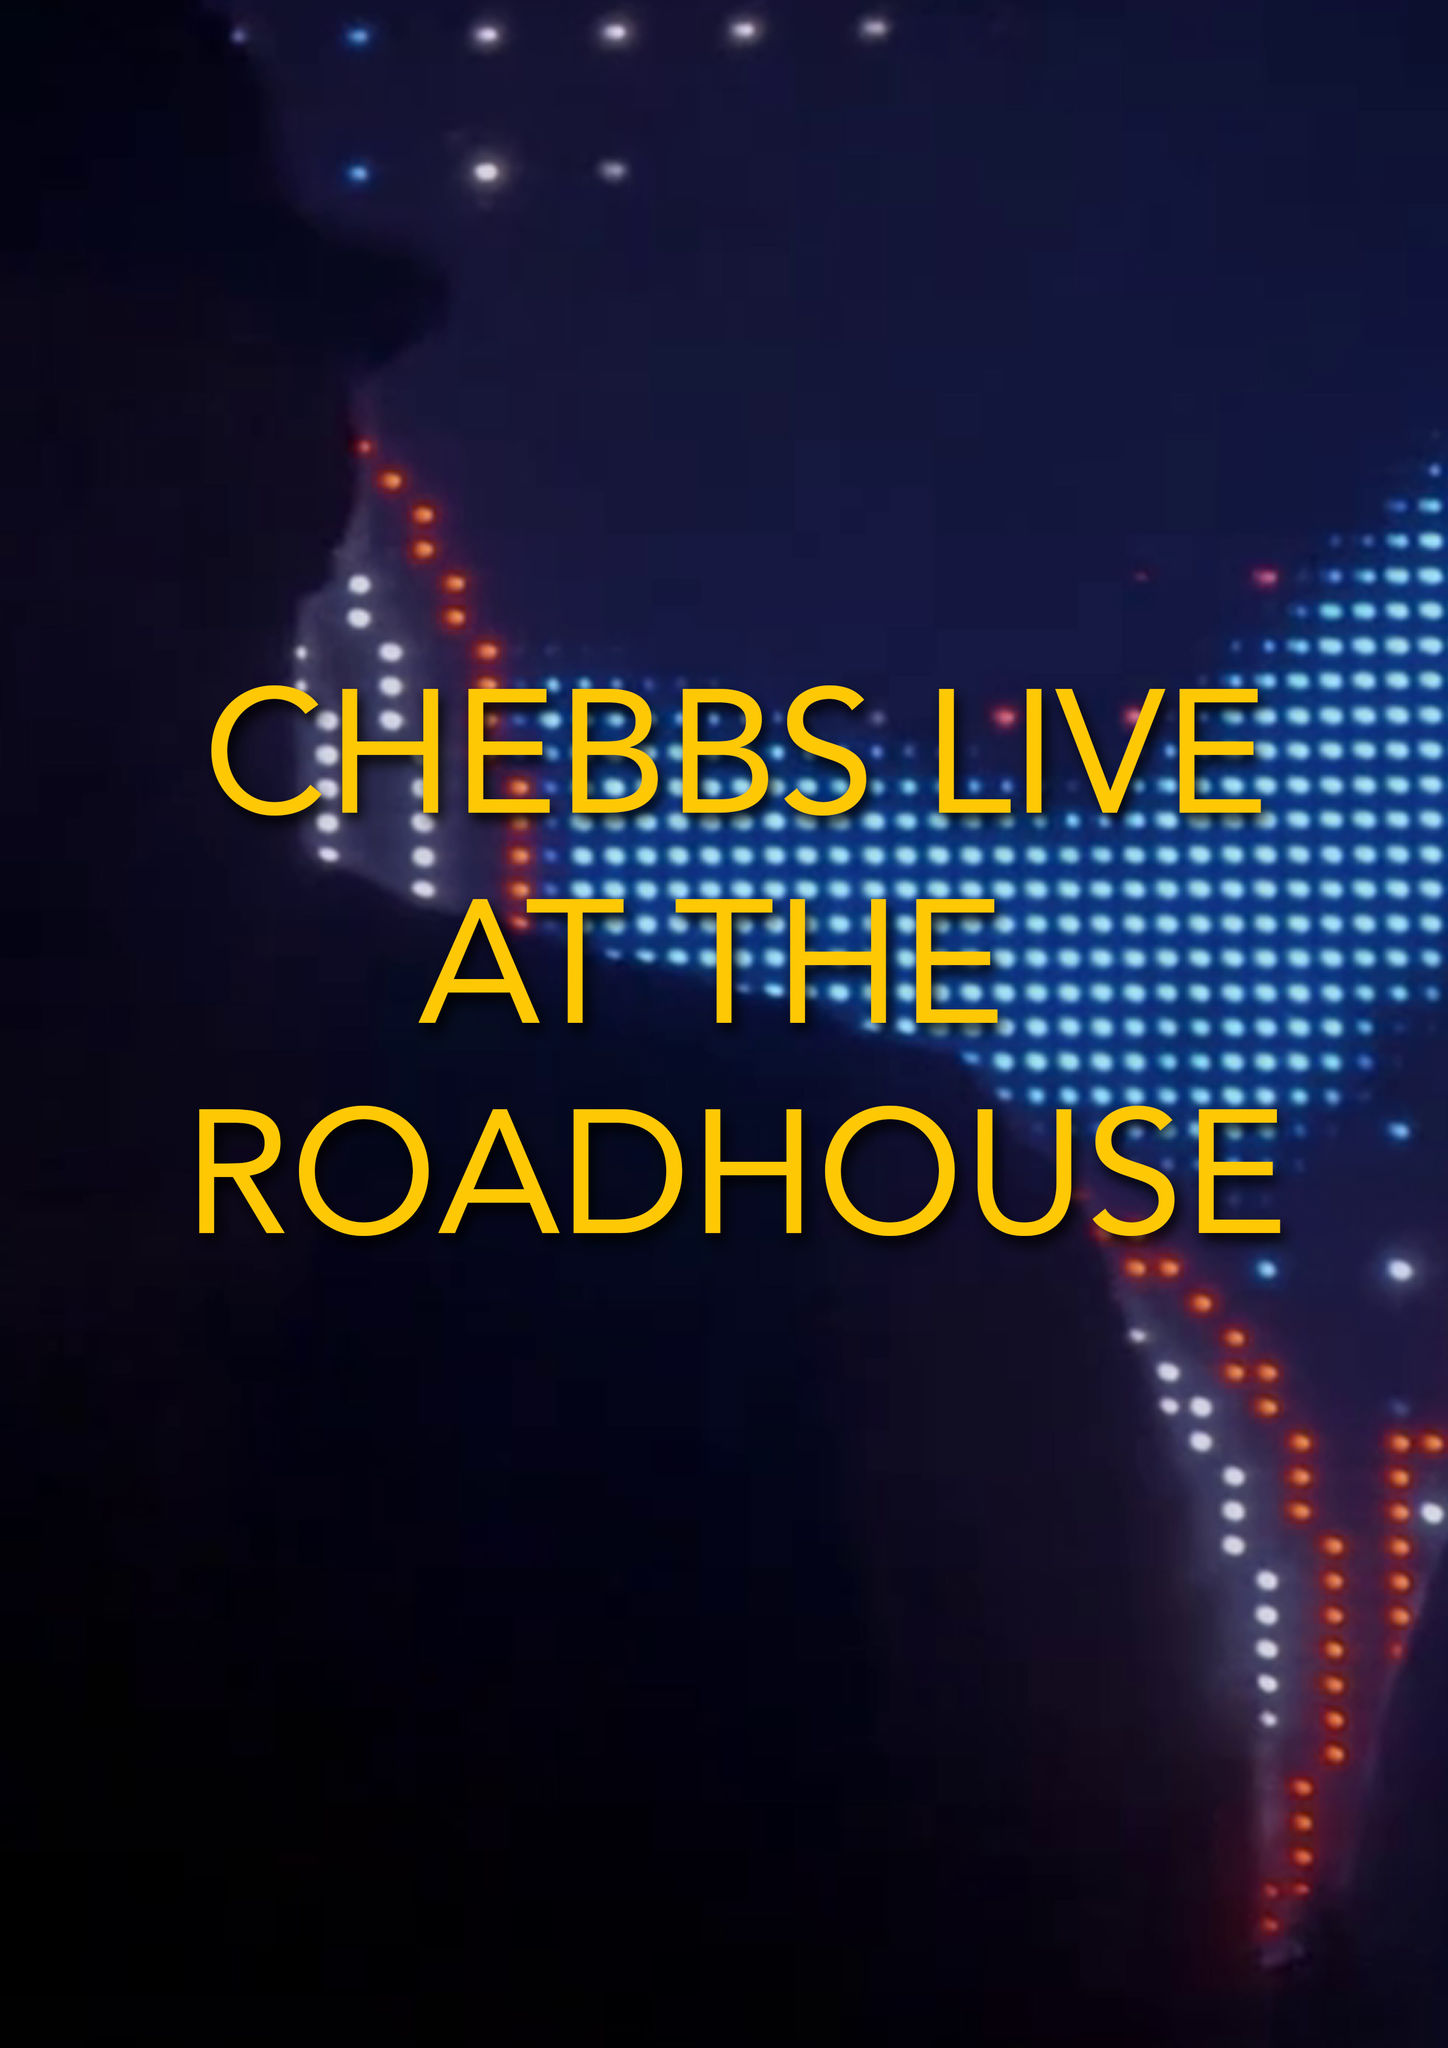 The Chebbs - Live at the Roadhouse